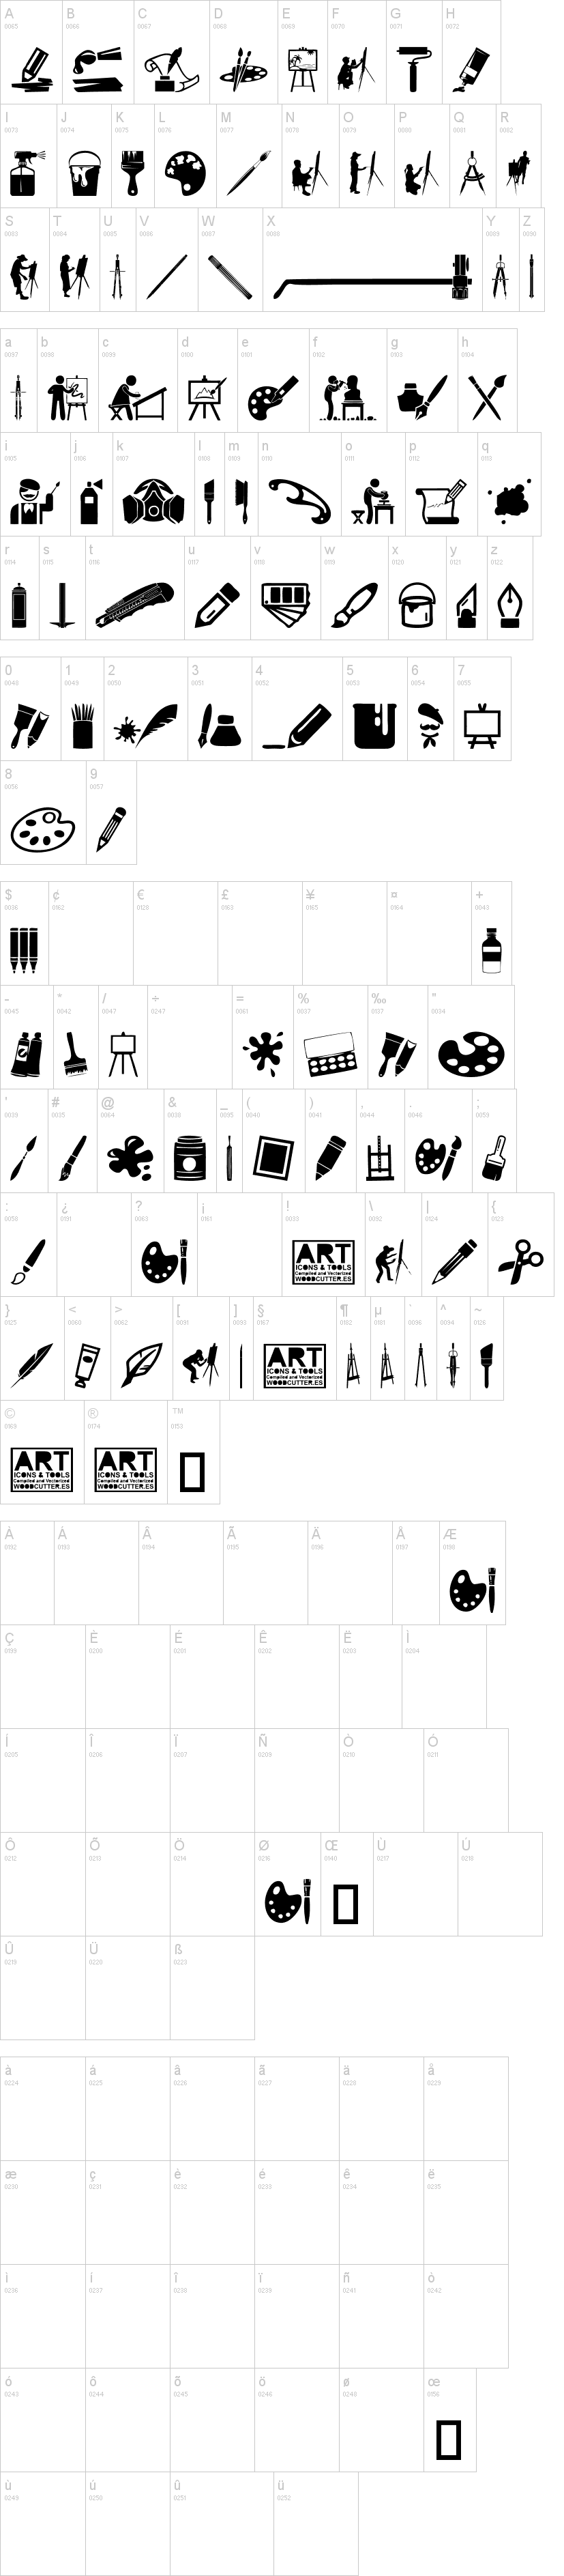 Art Icons and Tools